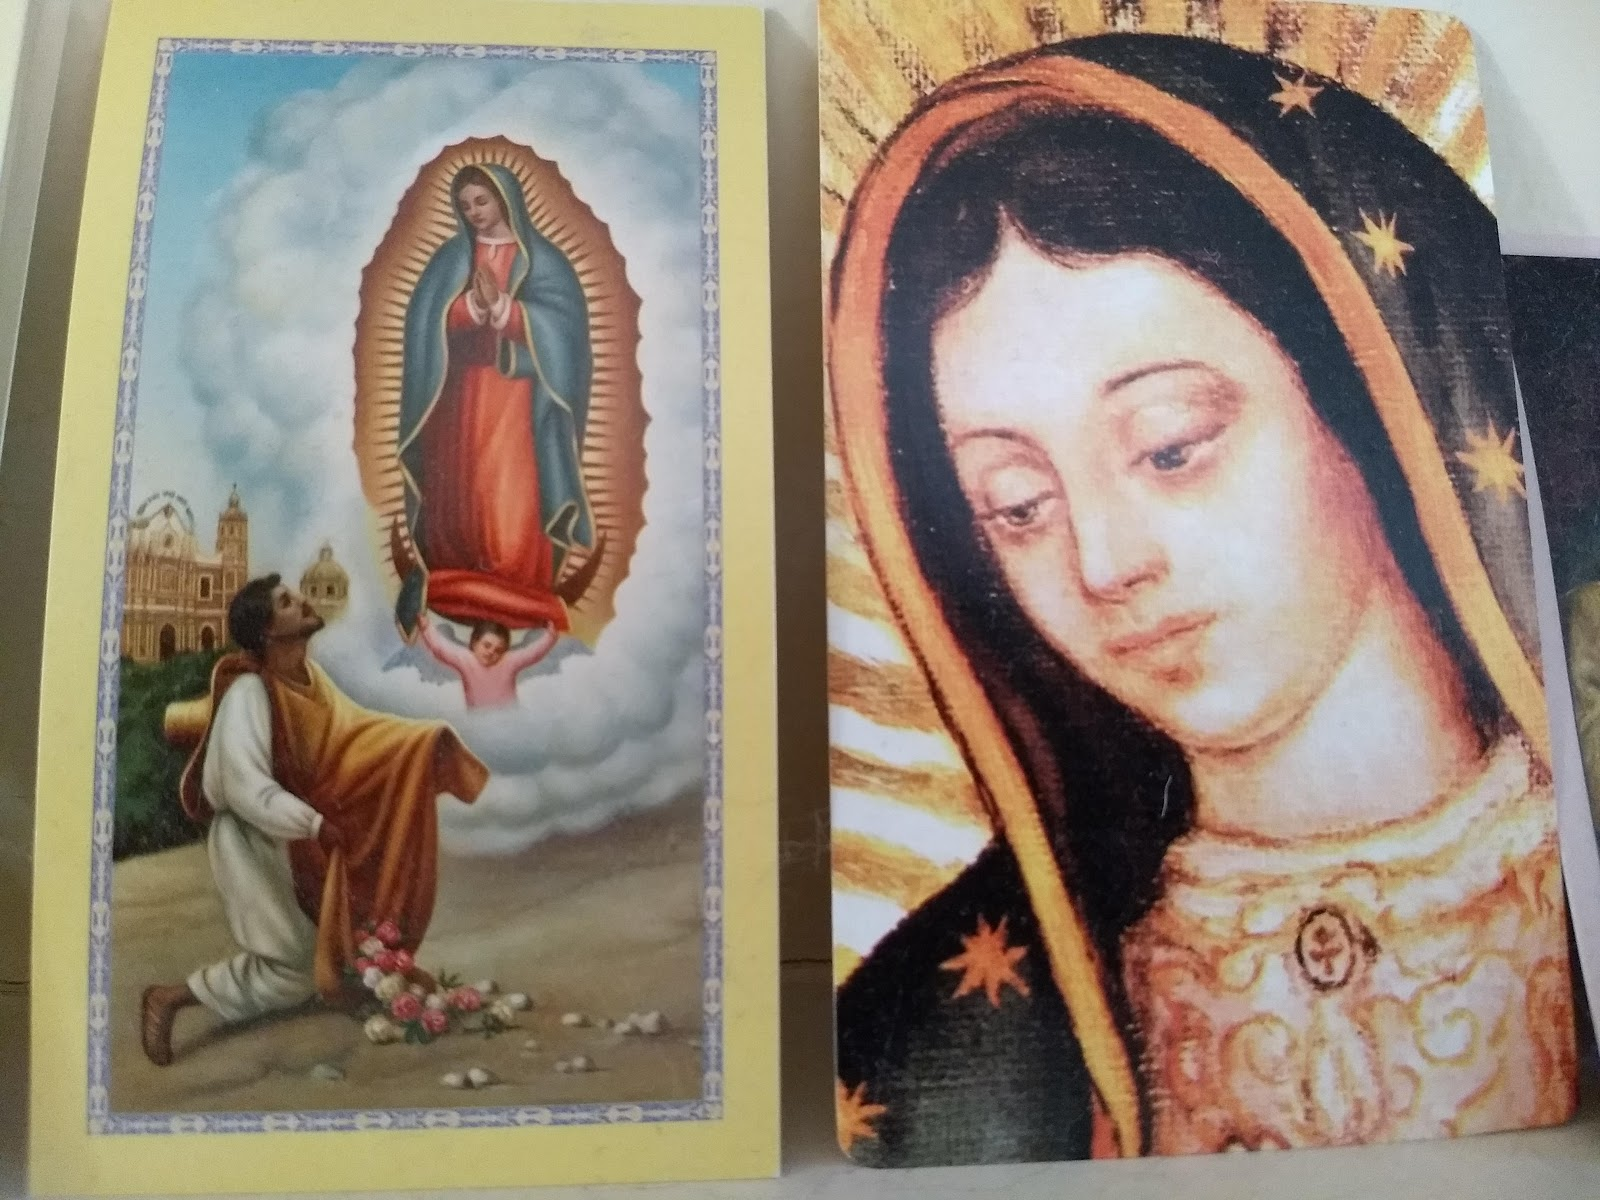 Vijaya Bodach Bound Sale In Honor Of Our Lady Of Guadalupe